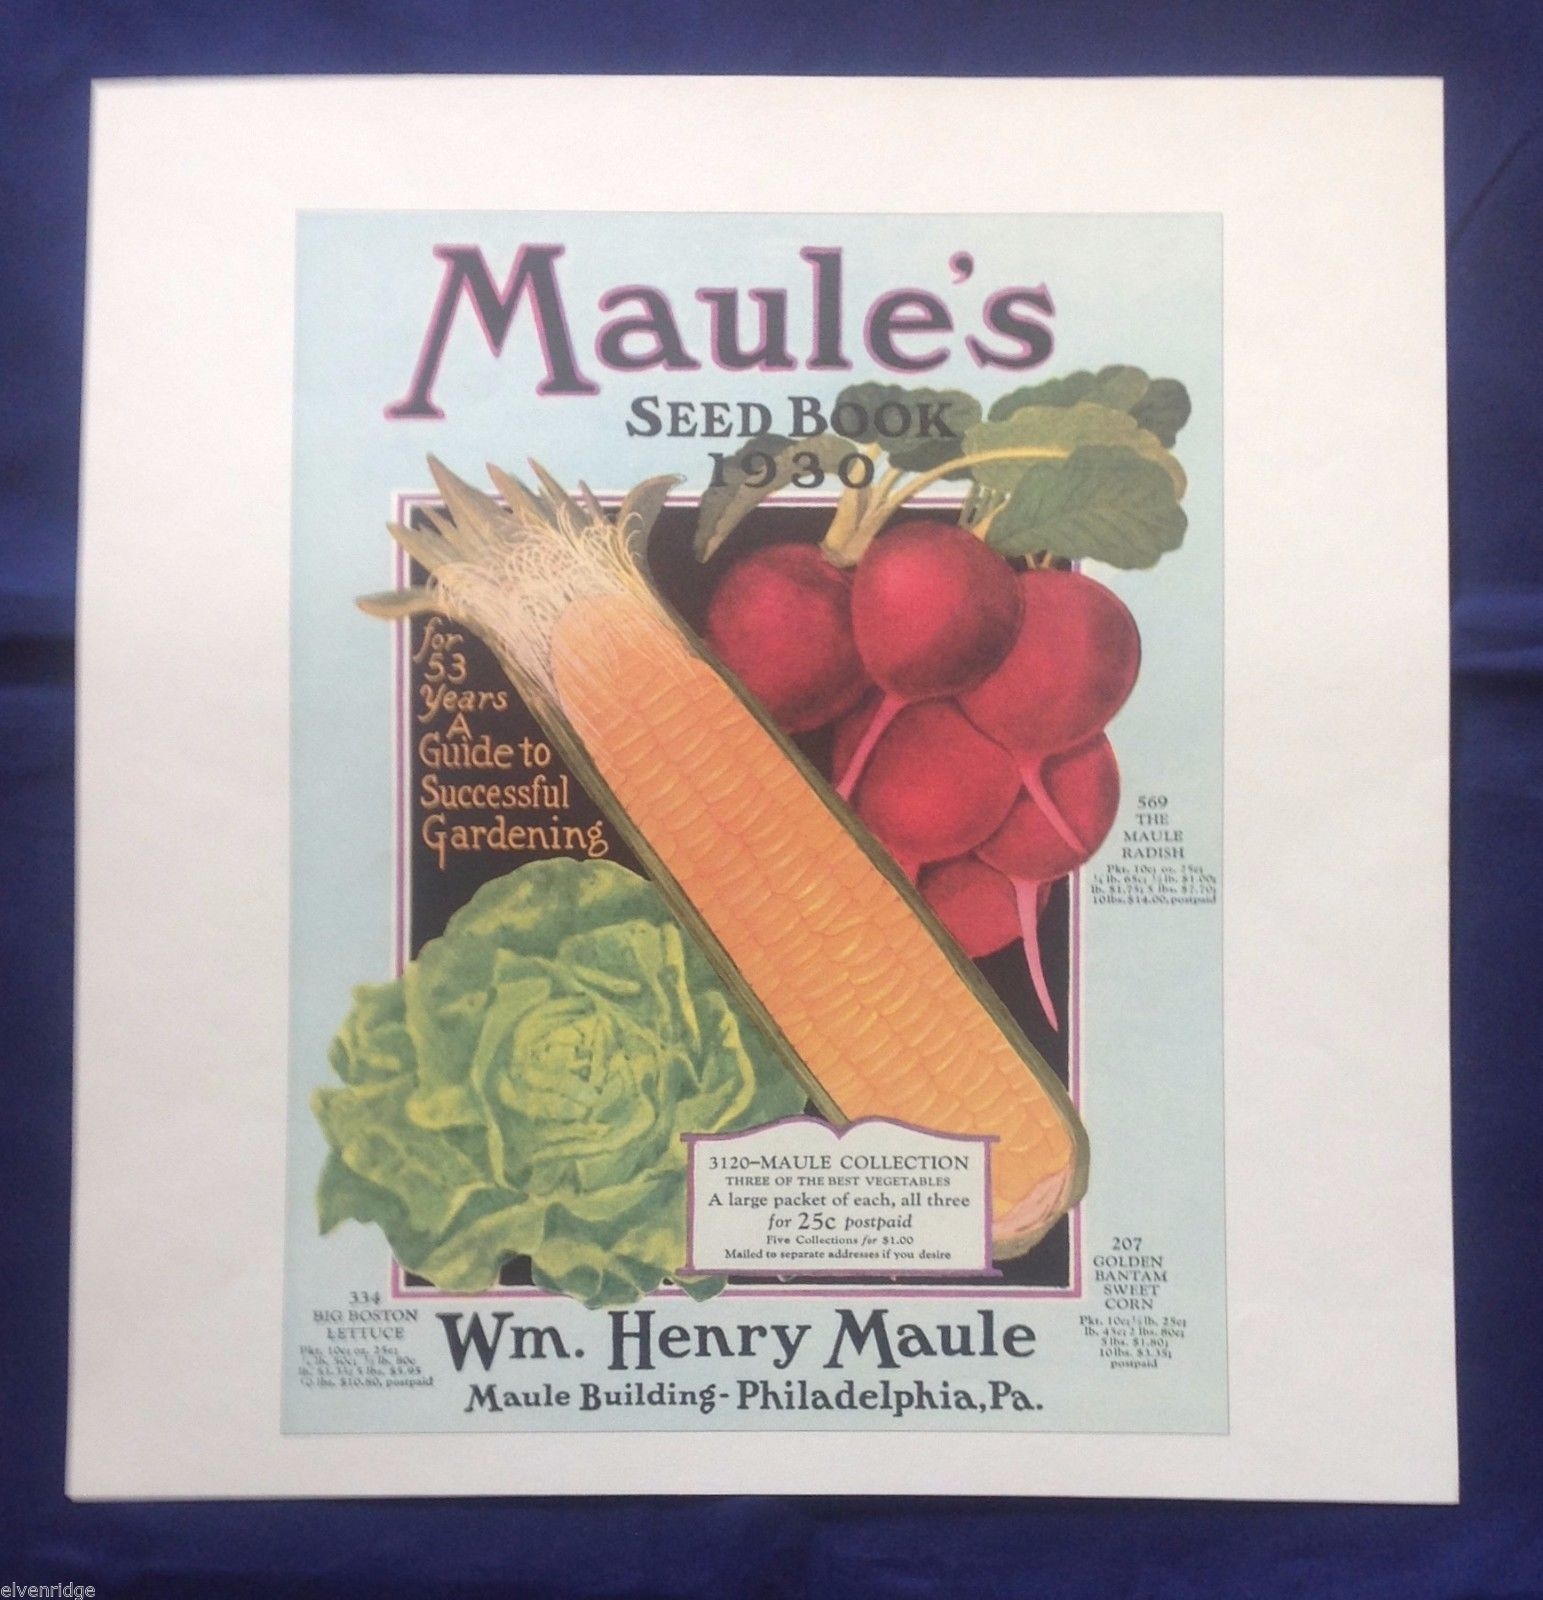 H.W. Maule's Seed Book Garden Vegetables 1900s Reprint Poster